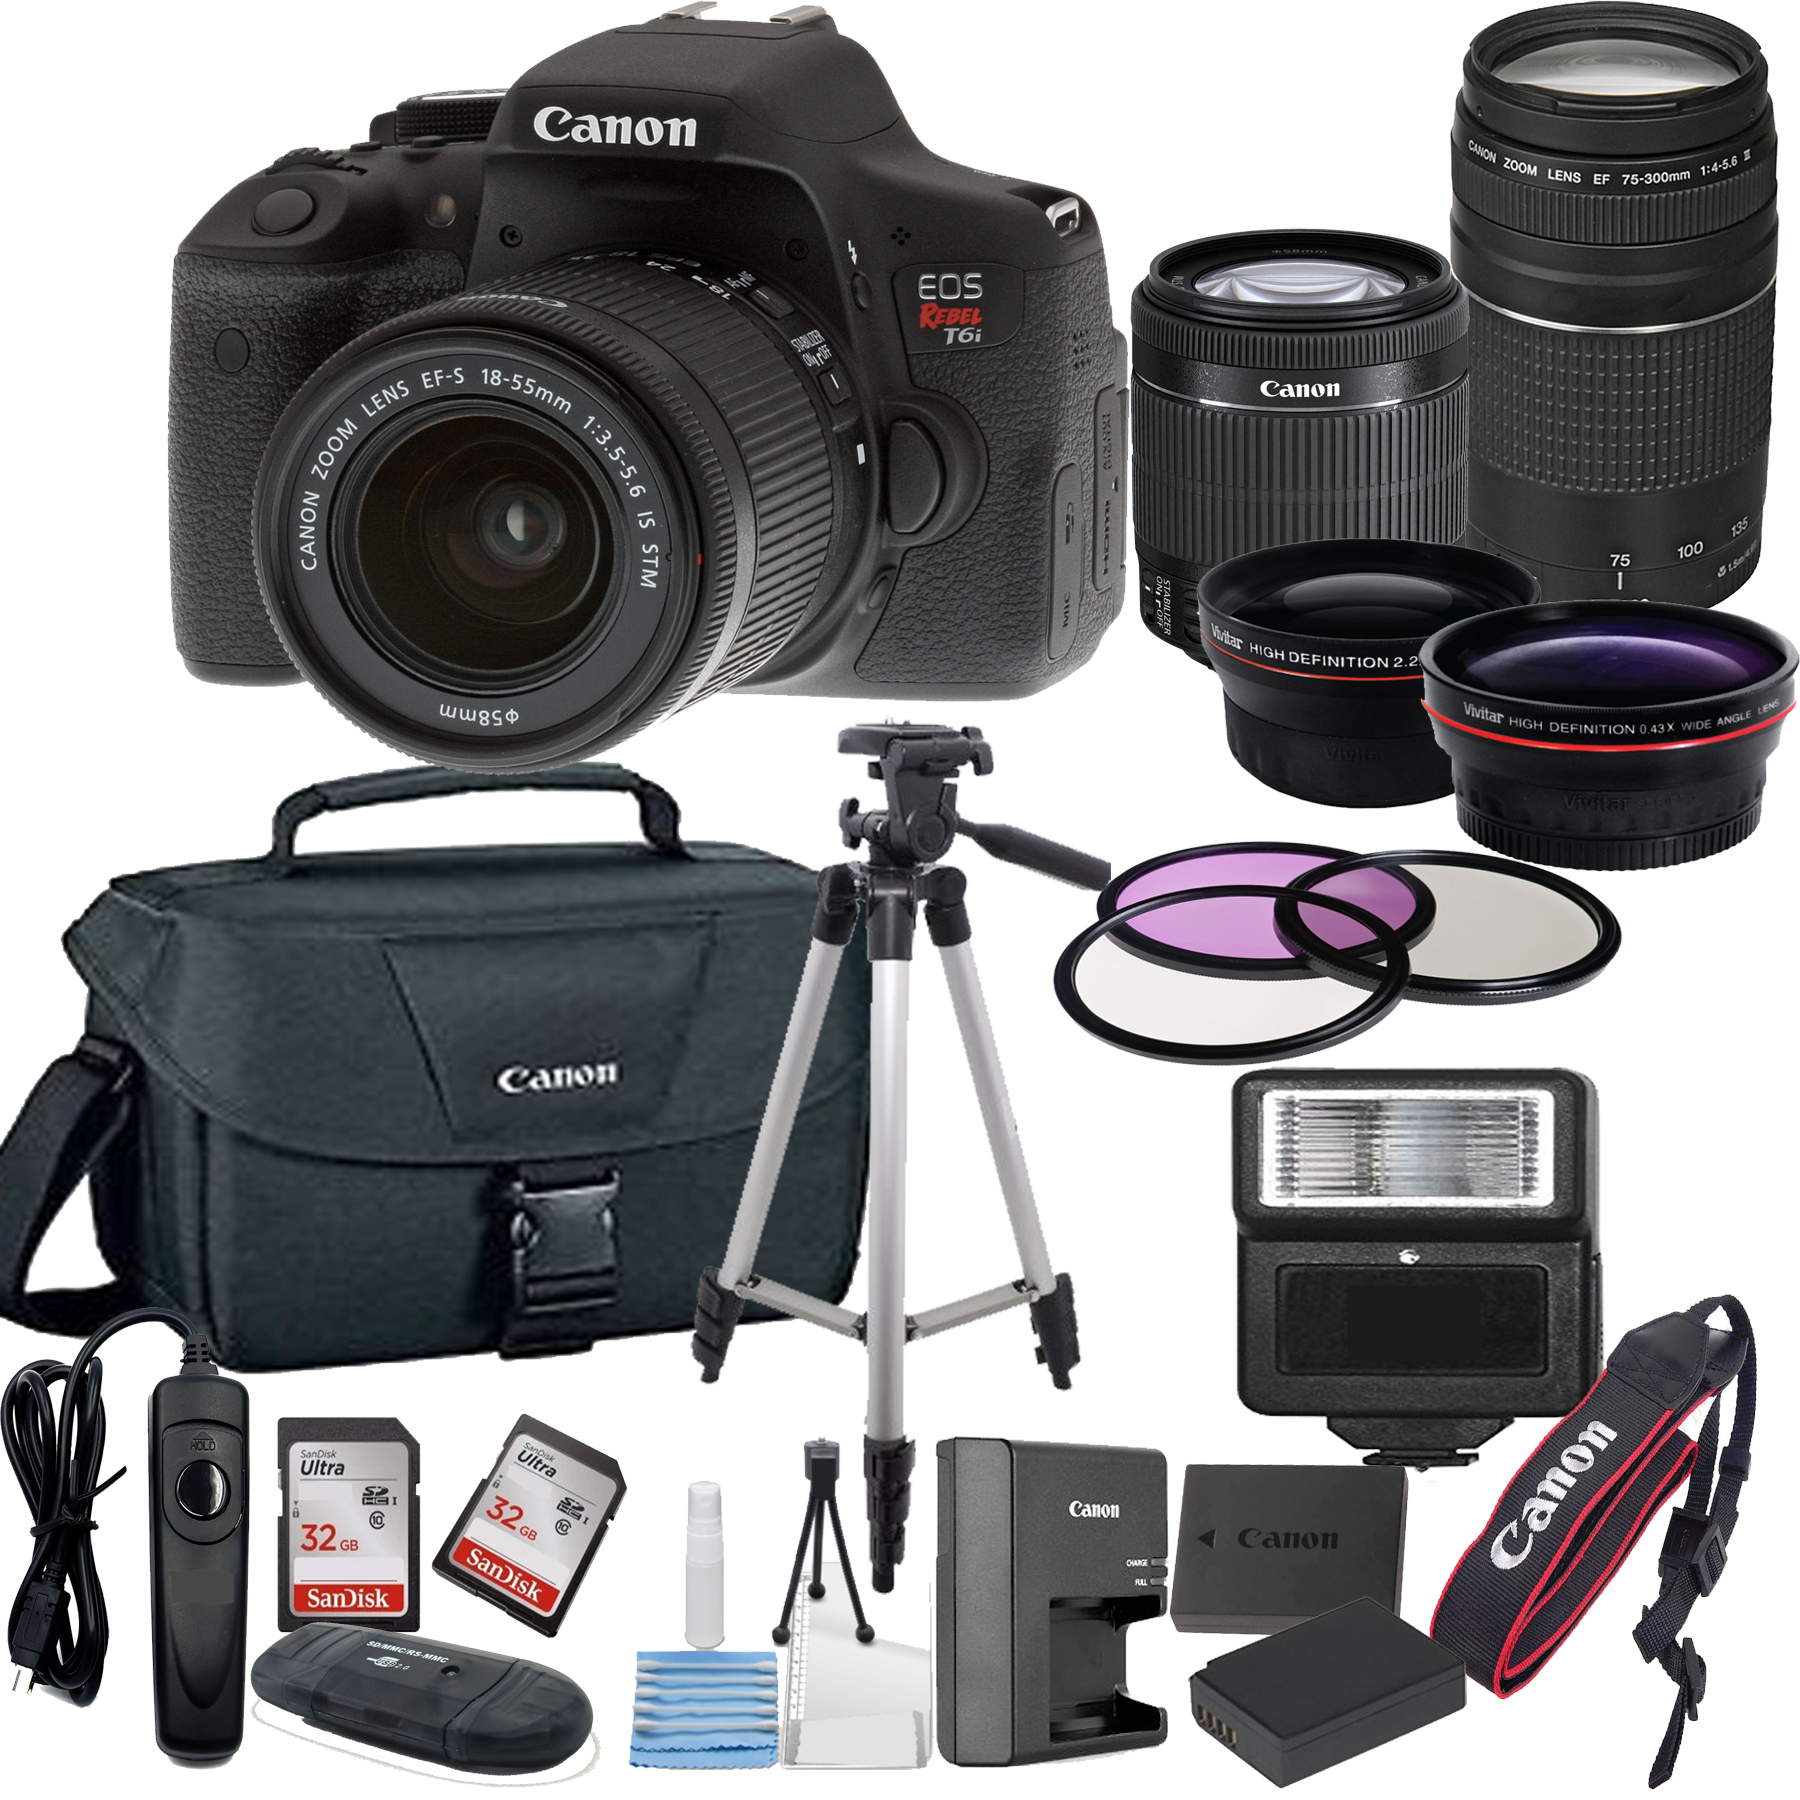 Canon EOS Rebel T6i Digital SLR Camera w/ EF-S 18-55mm + 75-300mm Telephoto Zoom Lens  Bundle includes Camera, Lenses, Filters, Bag, Memory Cards, Tripod, Flash, Remote Shutter , Cleaning Kit, Replace